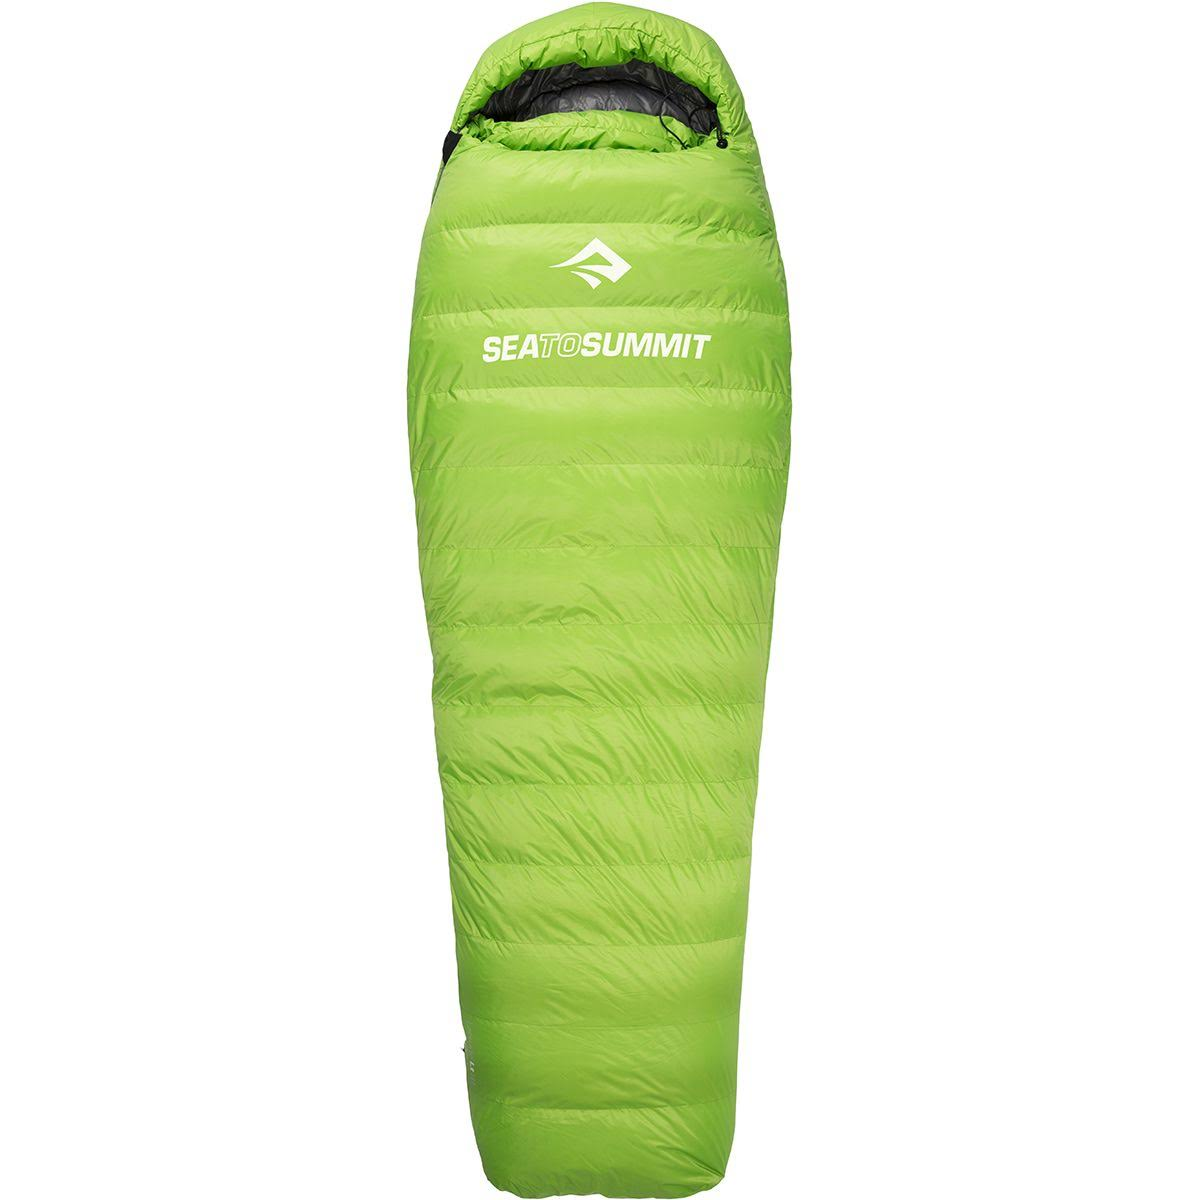 Sea to Summit Latitude LT II Sleeping Bag - Women's Regular Right